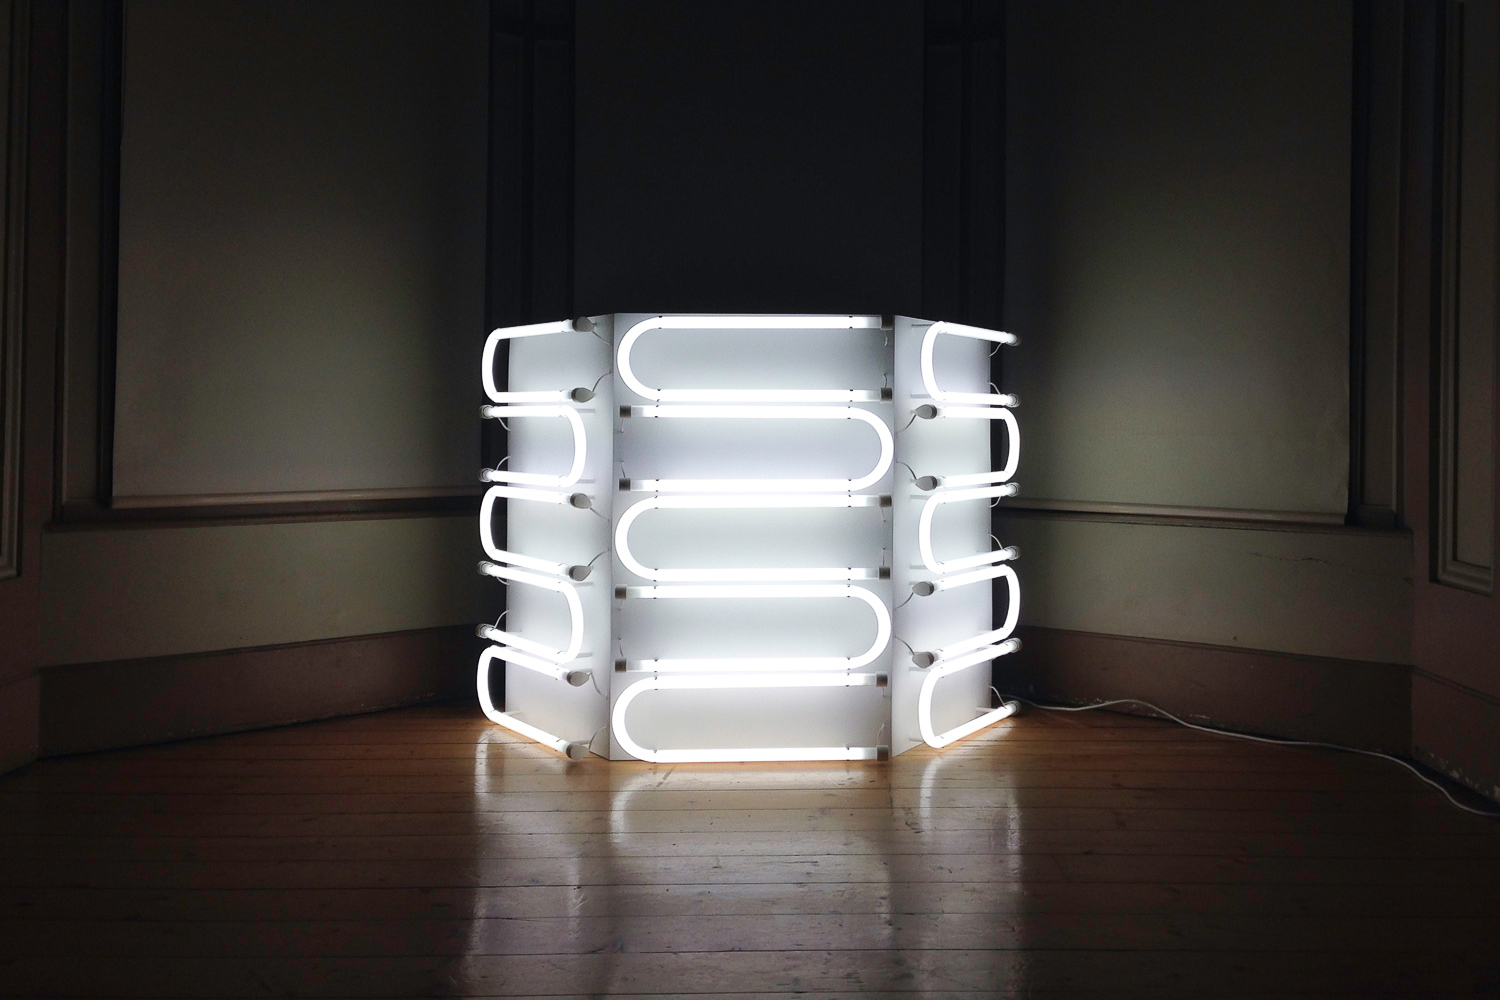 Meagan Streader,  One-Quarter U-Bend Column,  2017, light sculpture. | Courtesy the artist.